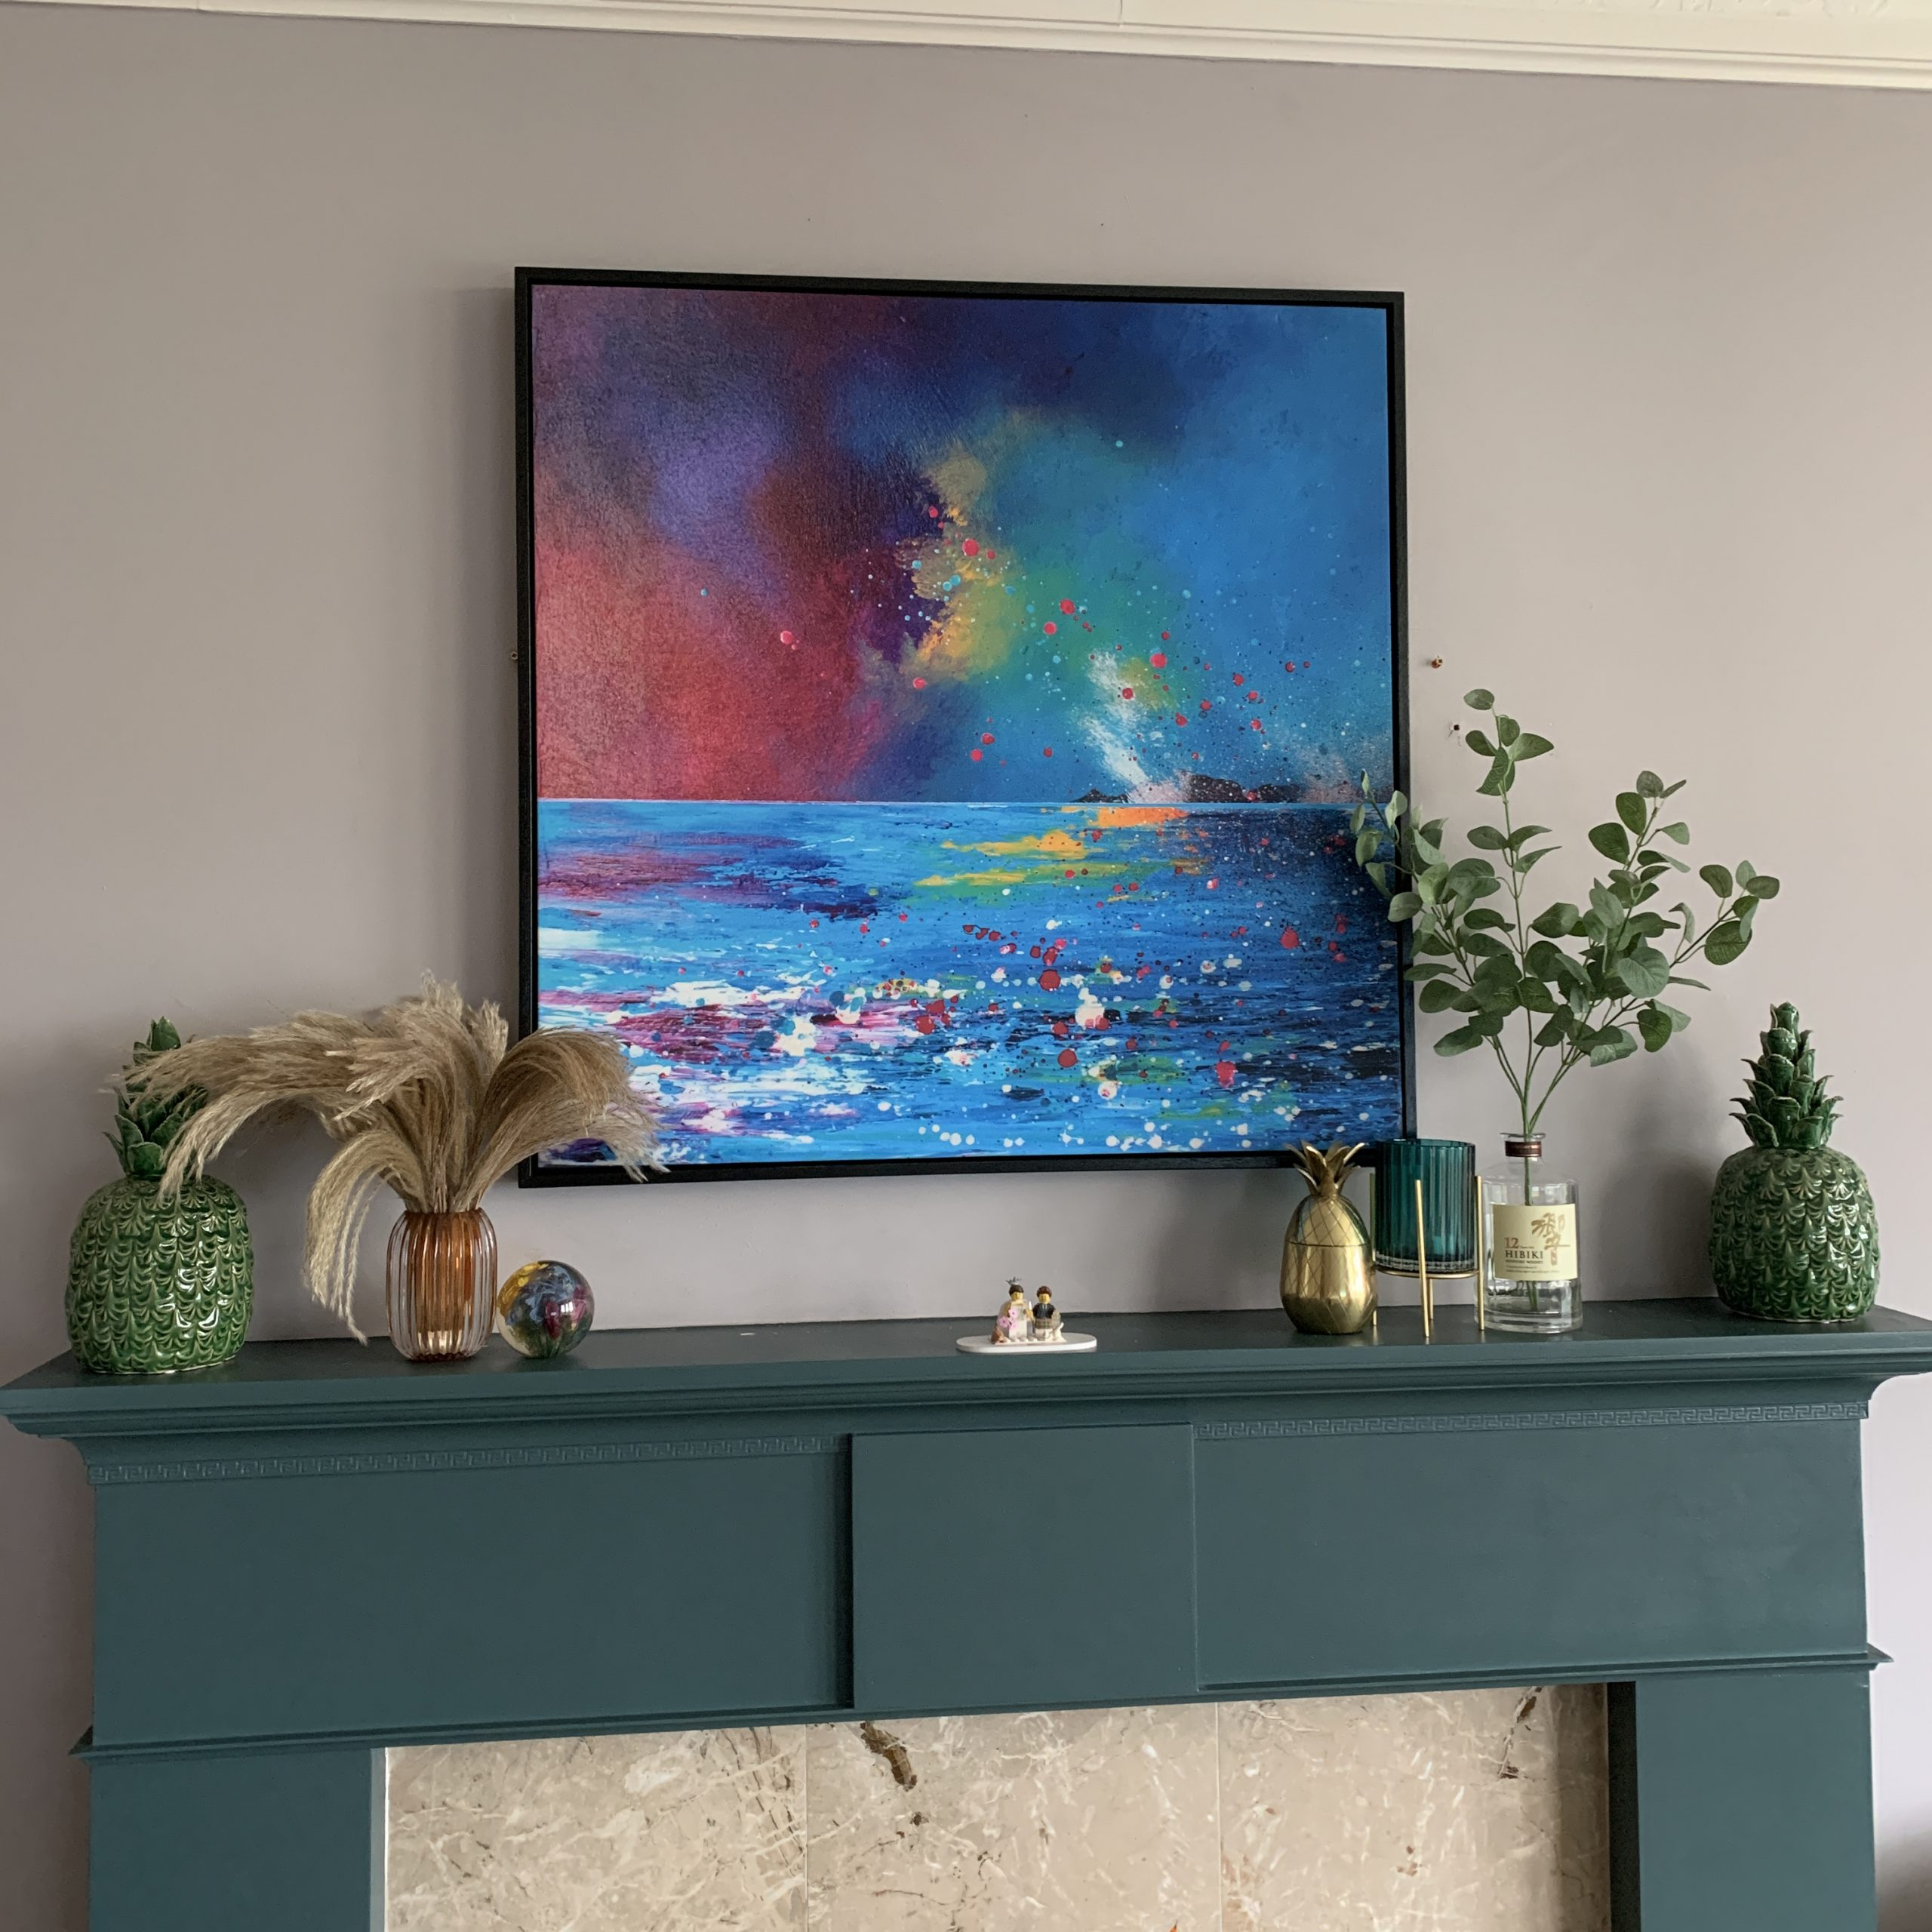 Mull, Oban - Canvas print from scottish painting